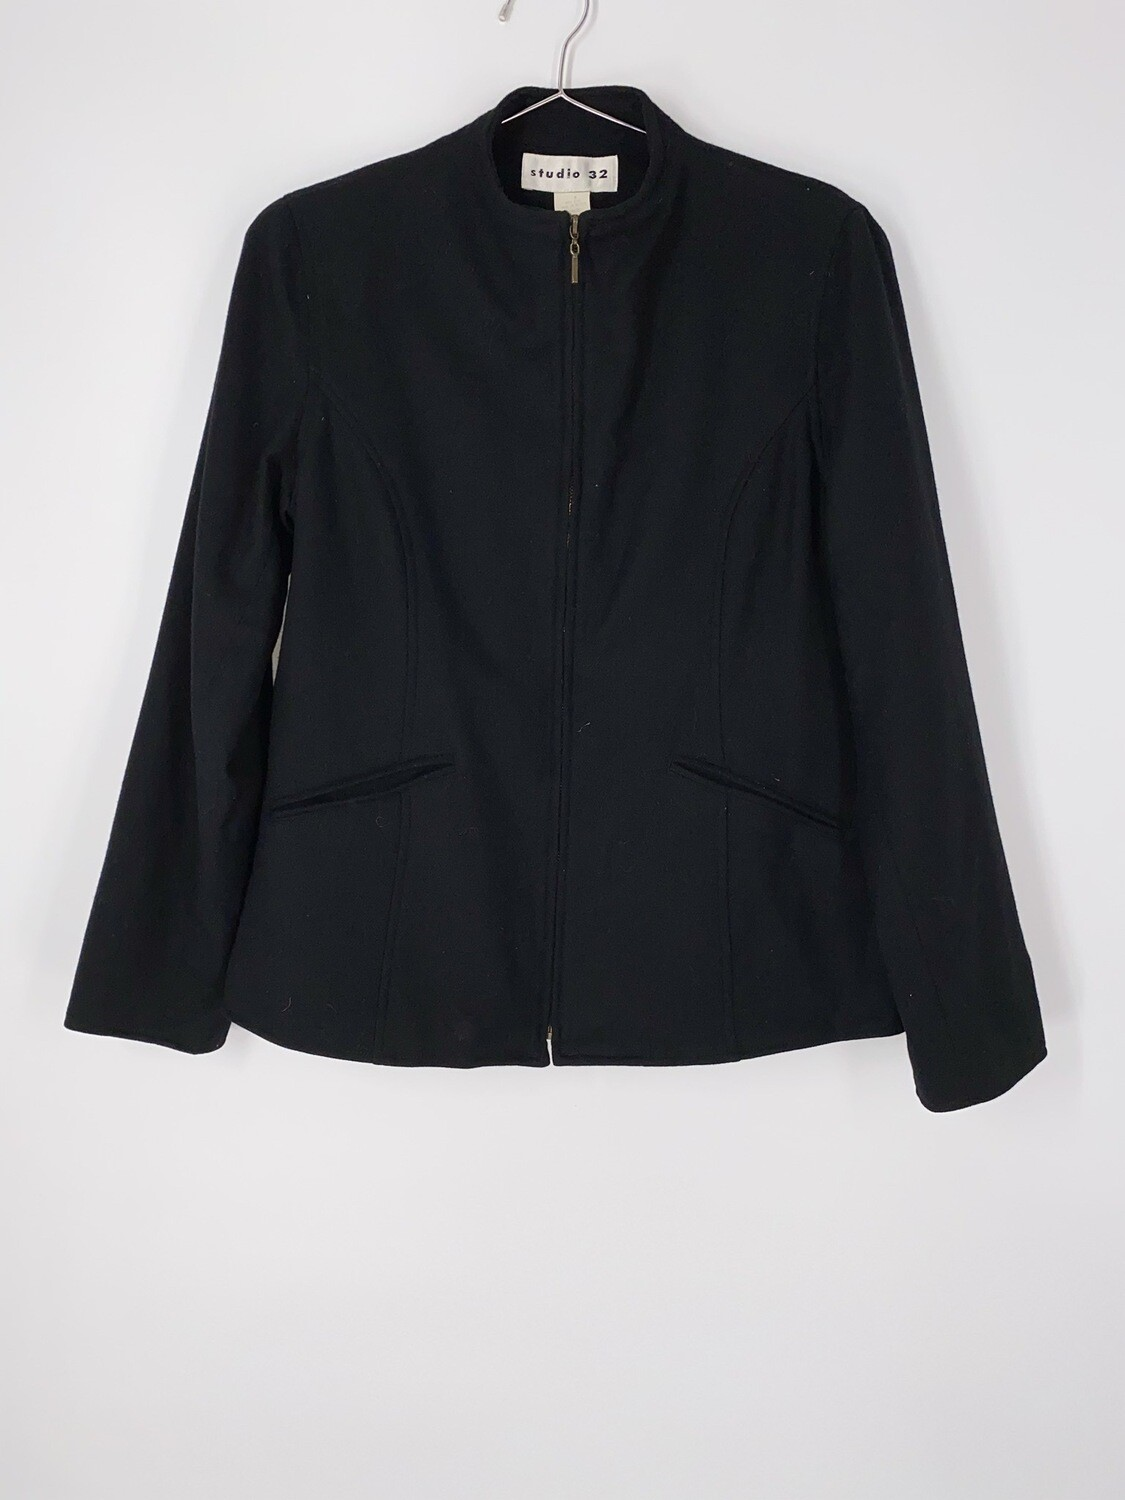 Wool Zip Up Jacket Size S